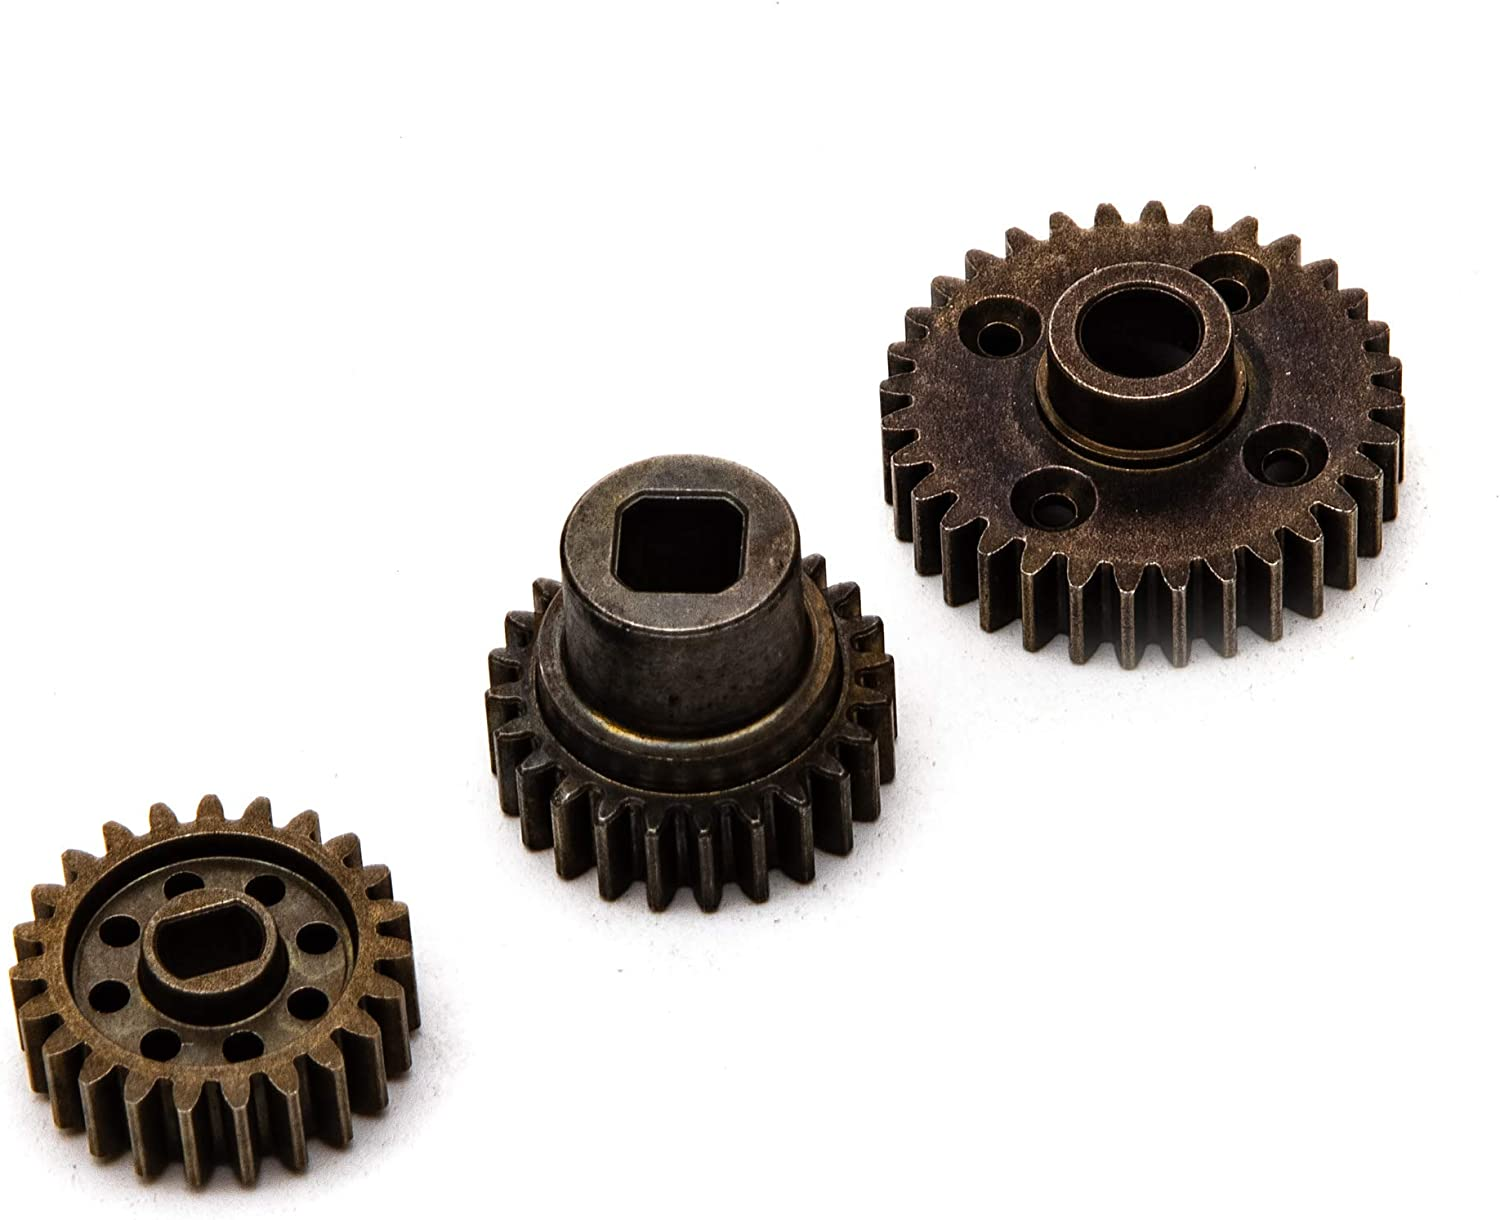 Axial At the price Transmission Gear Set [Alternative dealer] High RBX10 AXI232058 Speed